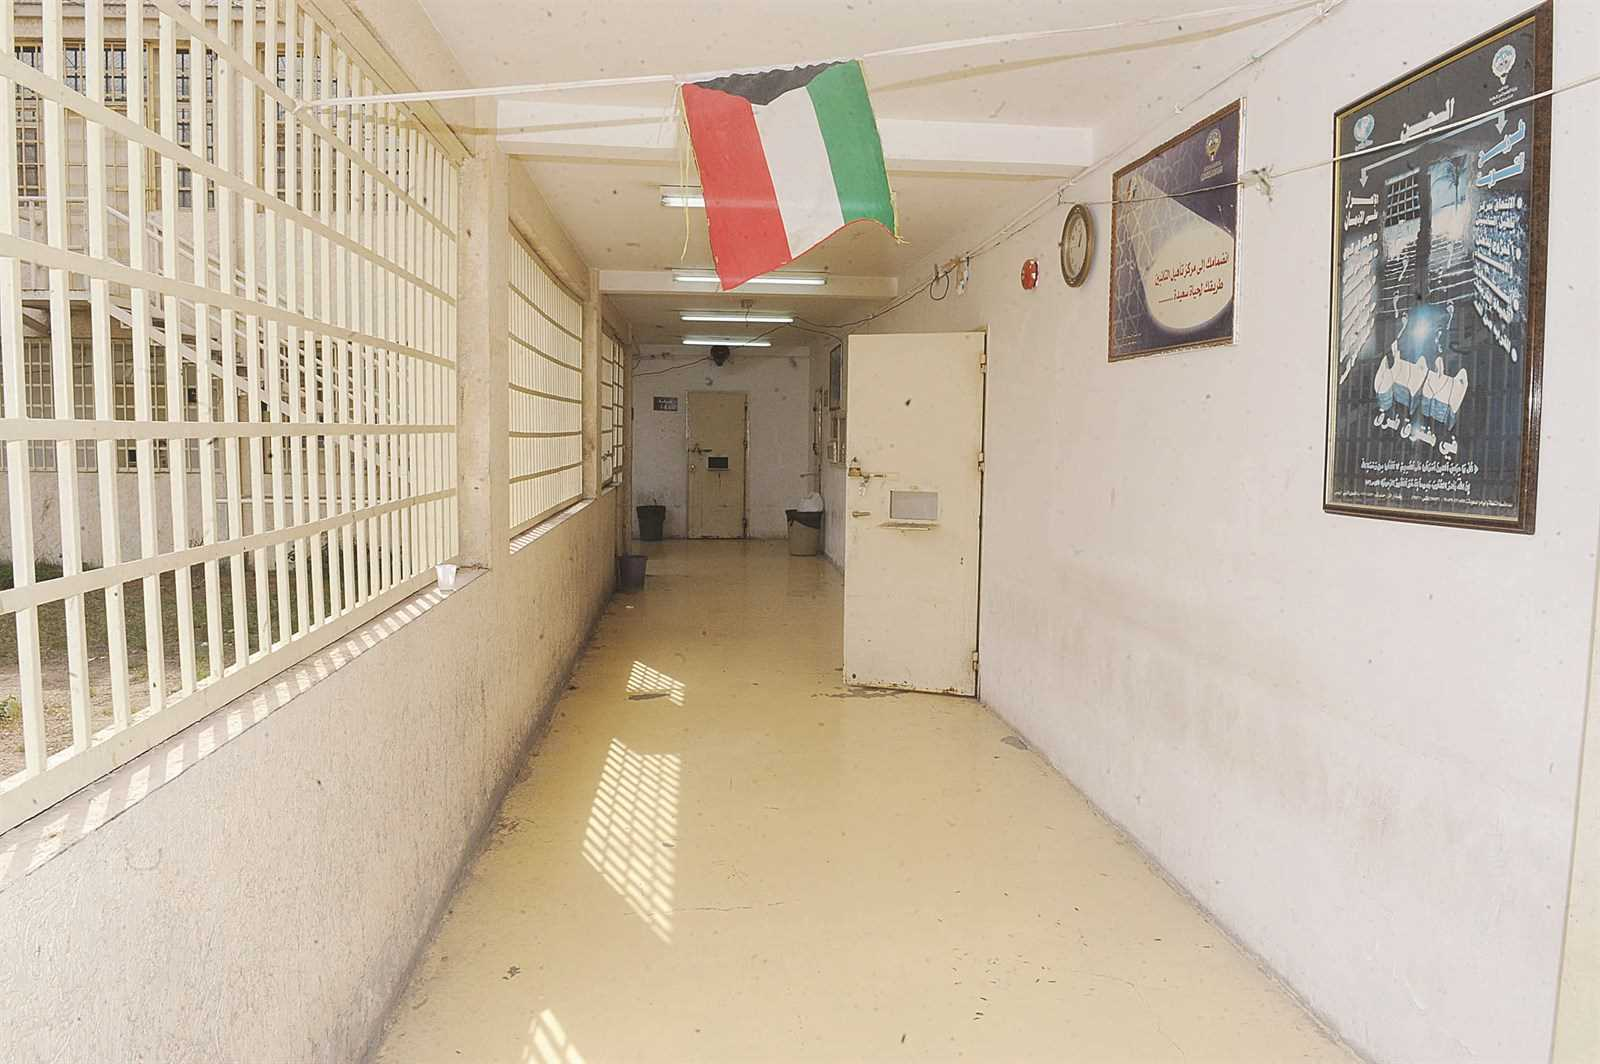 Kuwait: Authorities should conduct immediate investigation into security forces storming of Central prison